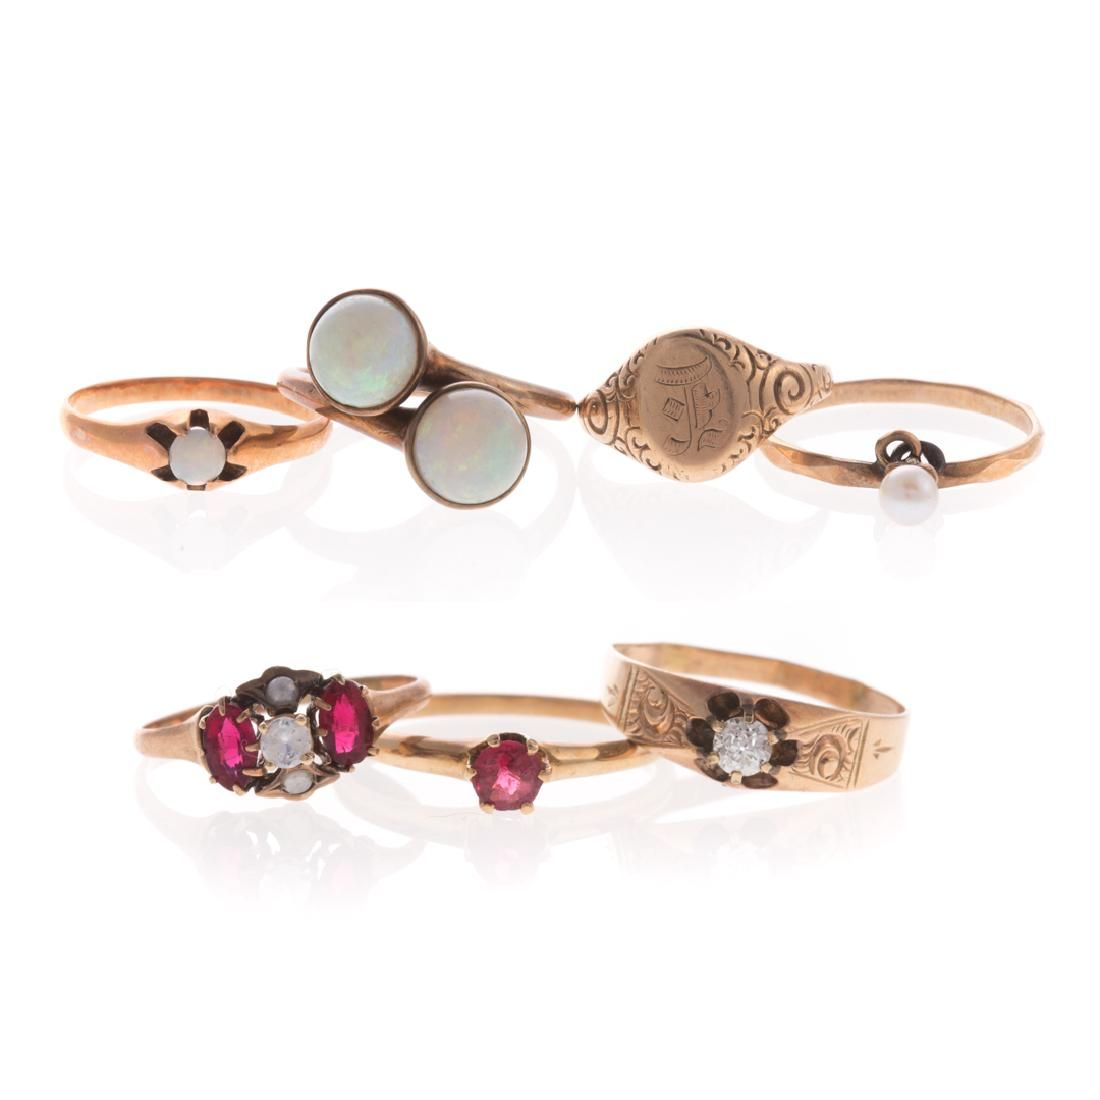 Seven Lady's Vintage Rings in Gold